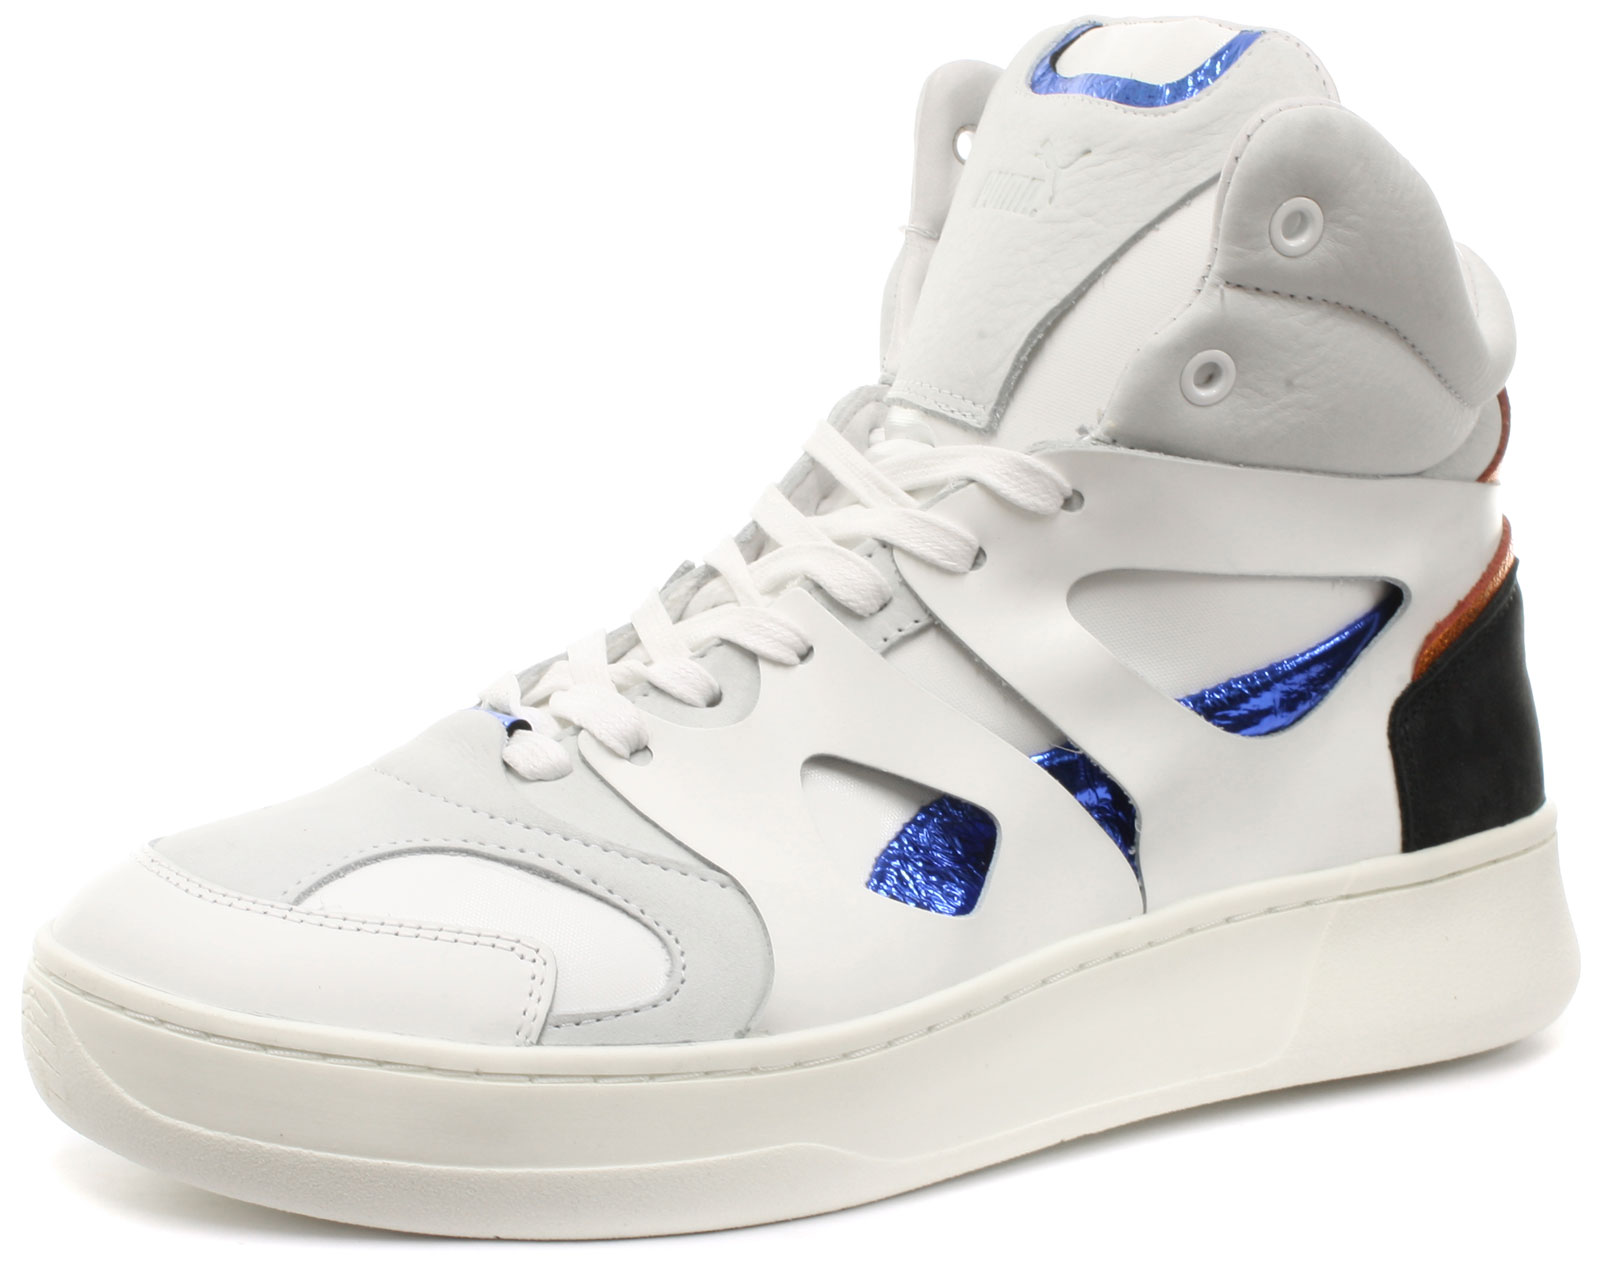 New WEISS Puma Alexander McQueen MCQ Move Mid WEISS New Mens Trainers ALL SIZES d29a3a